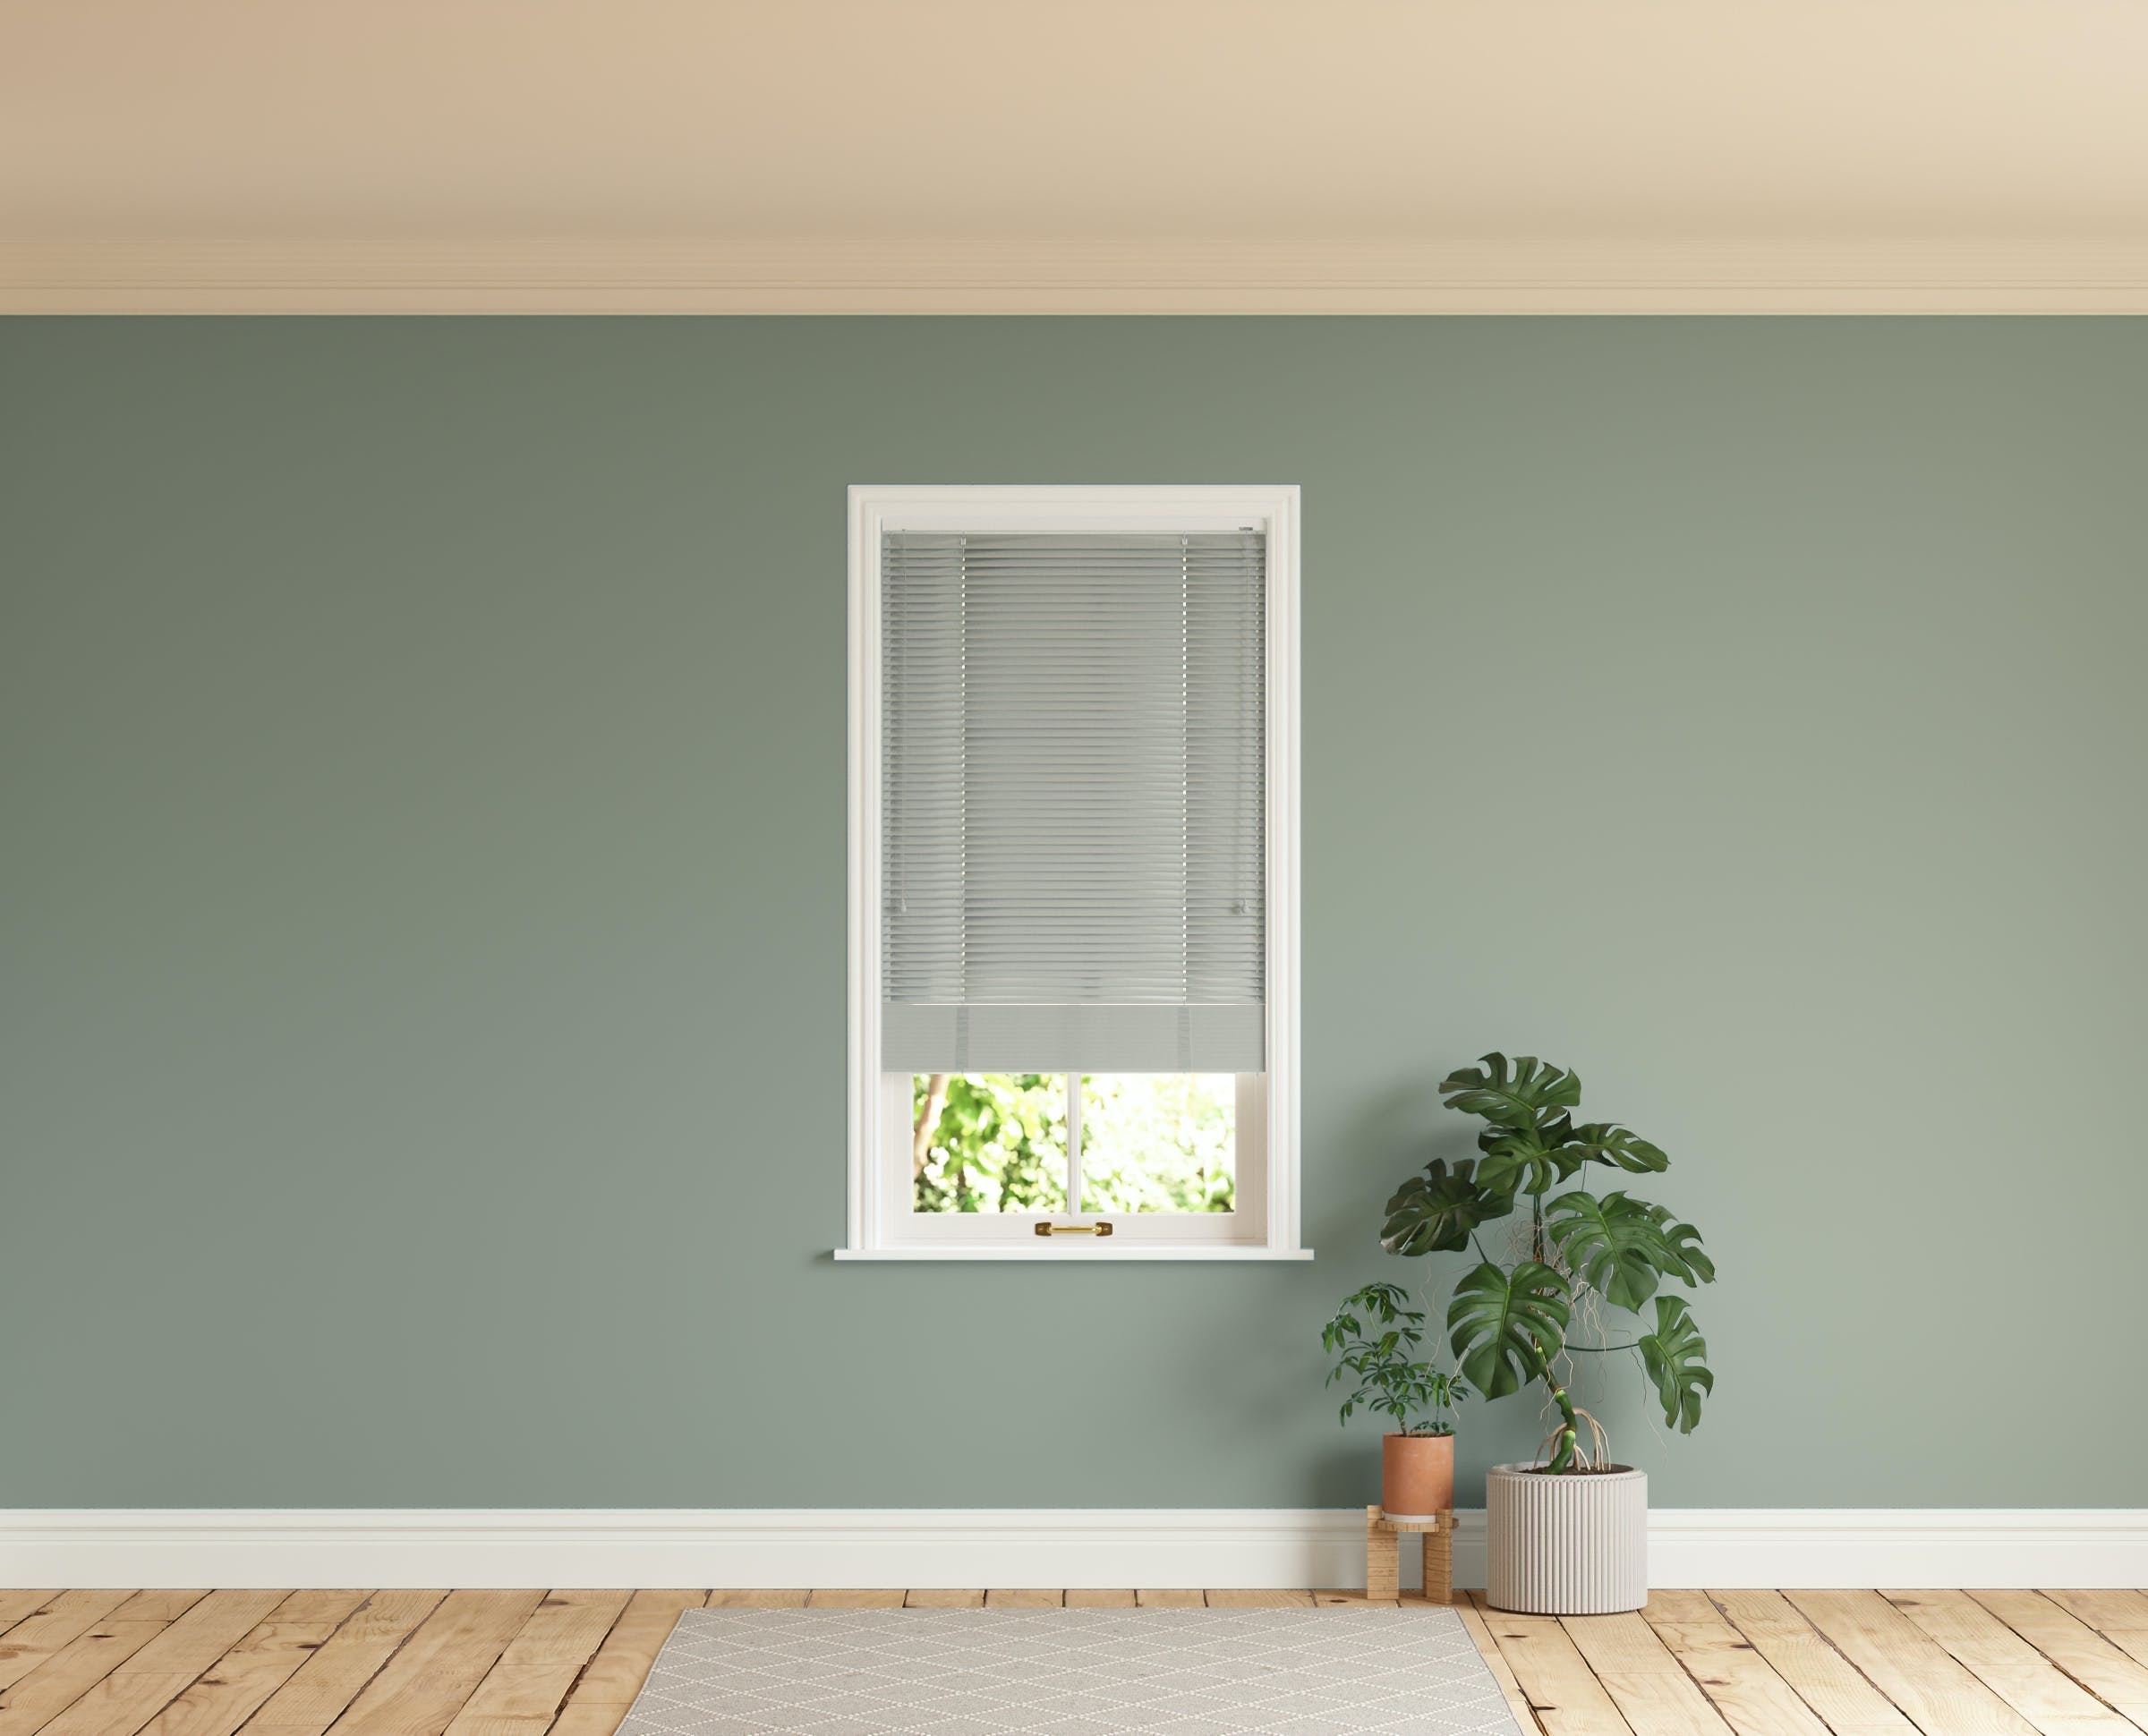 Room with walls painted in Lick Green 02 and Grey 04 Venetian blinds